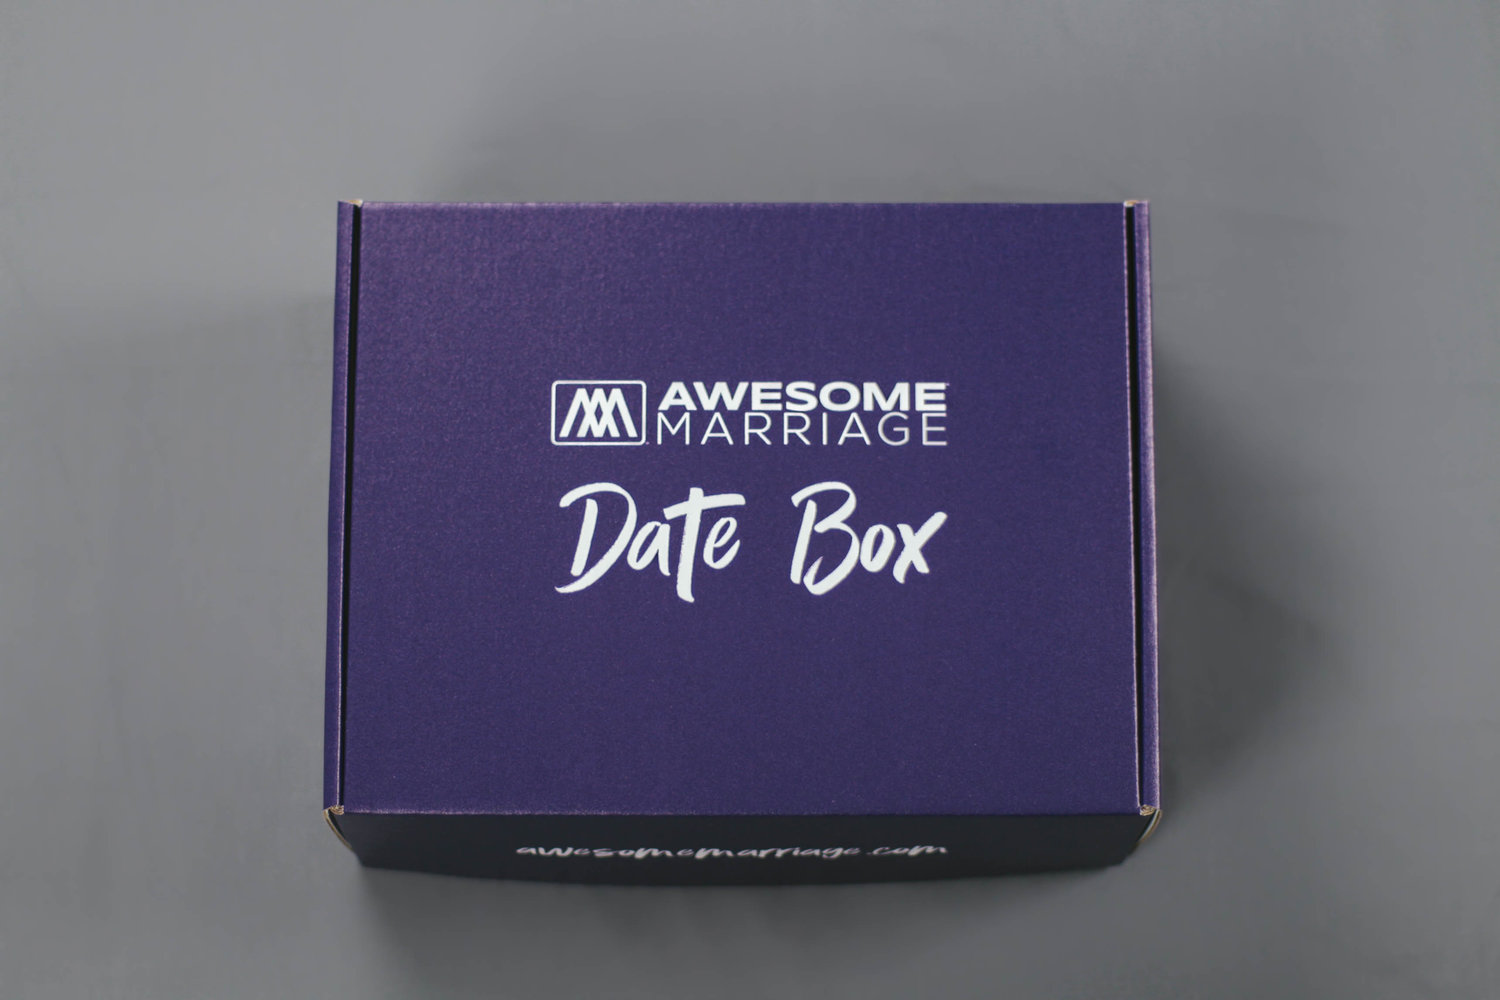 Awesome Marriage Date box photo.jpg